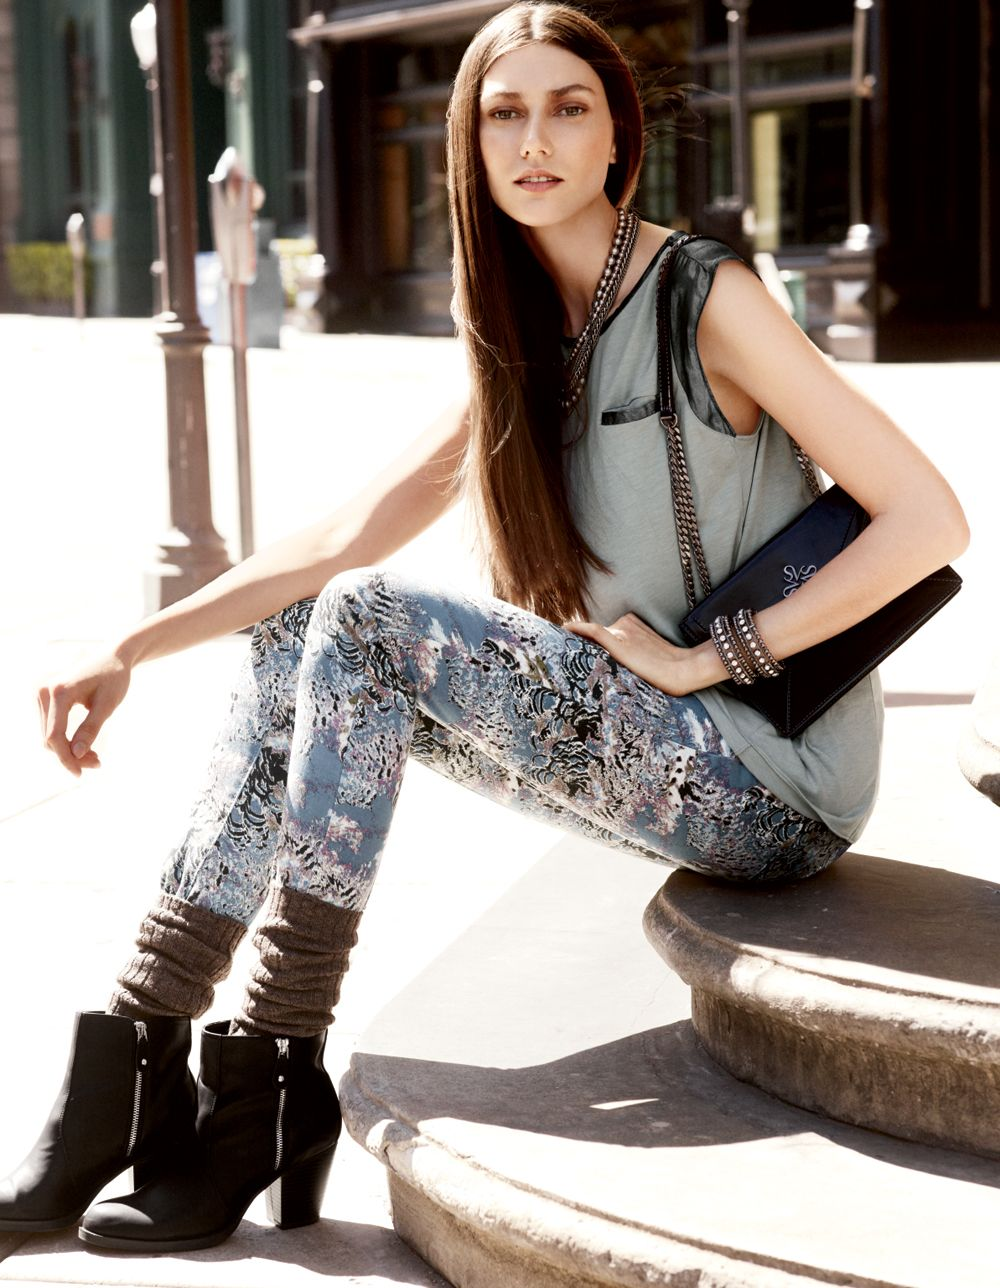 The patterned pant in Vera Wang's signature style. Kohls